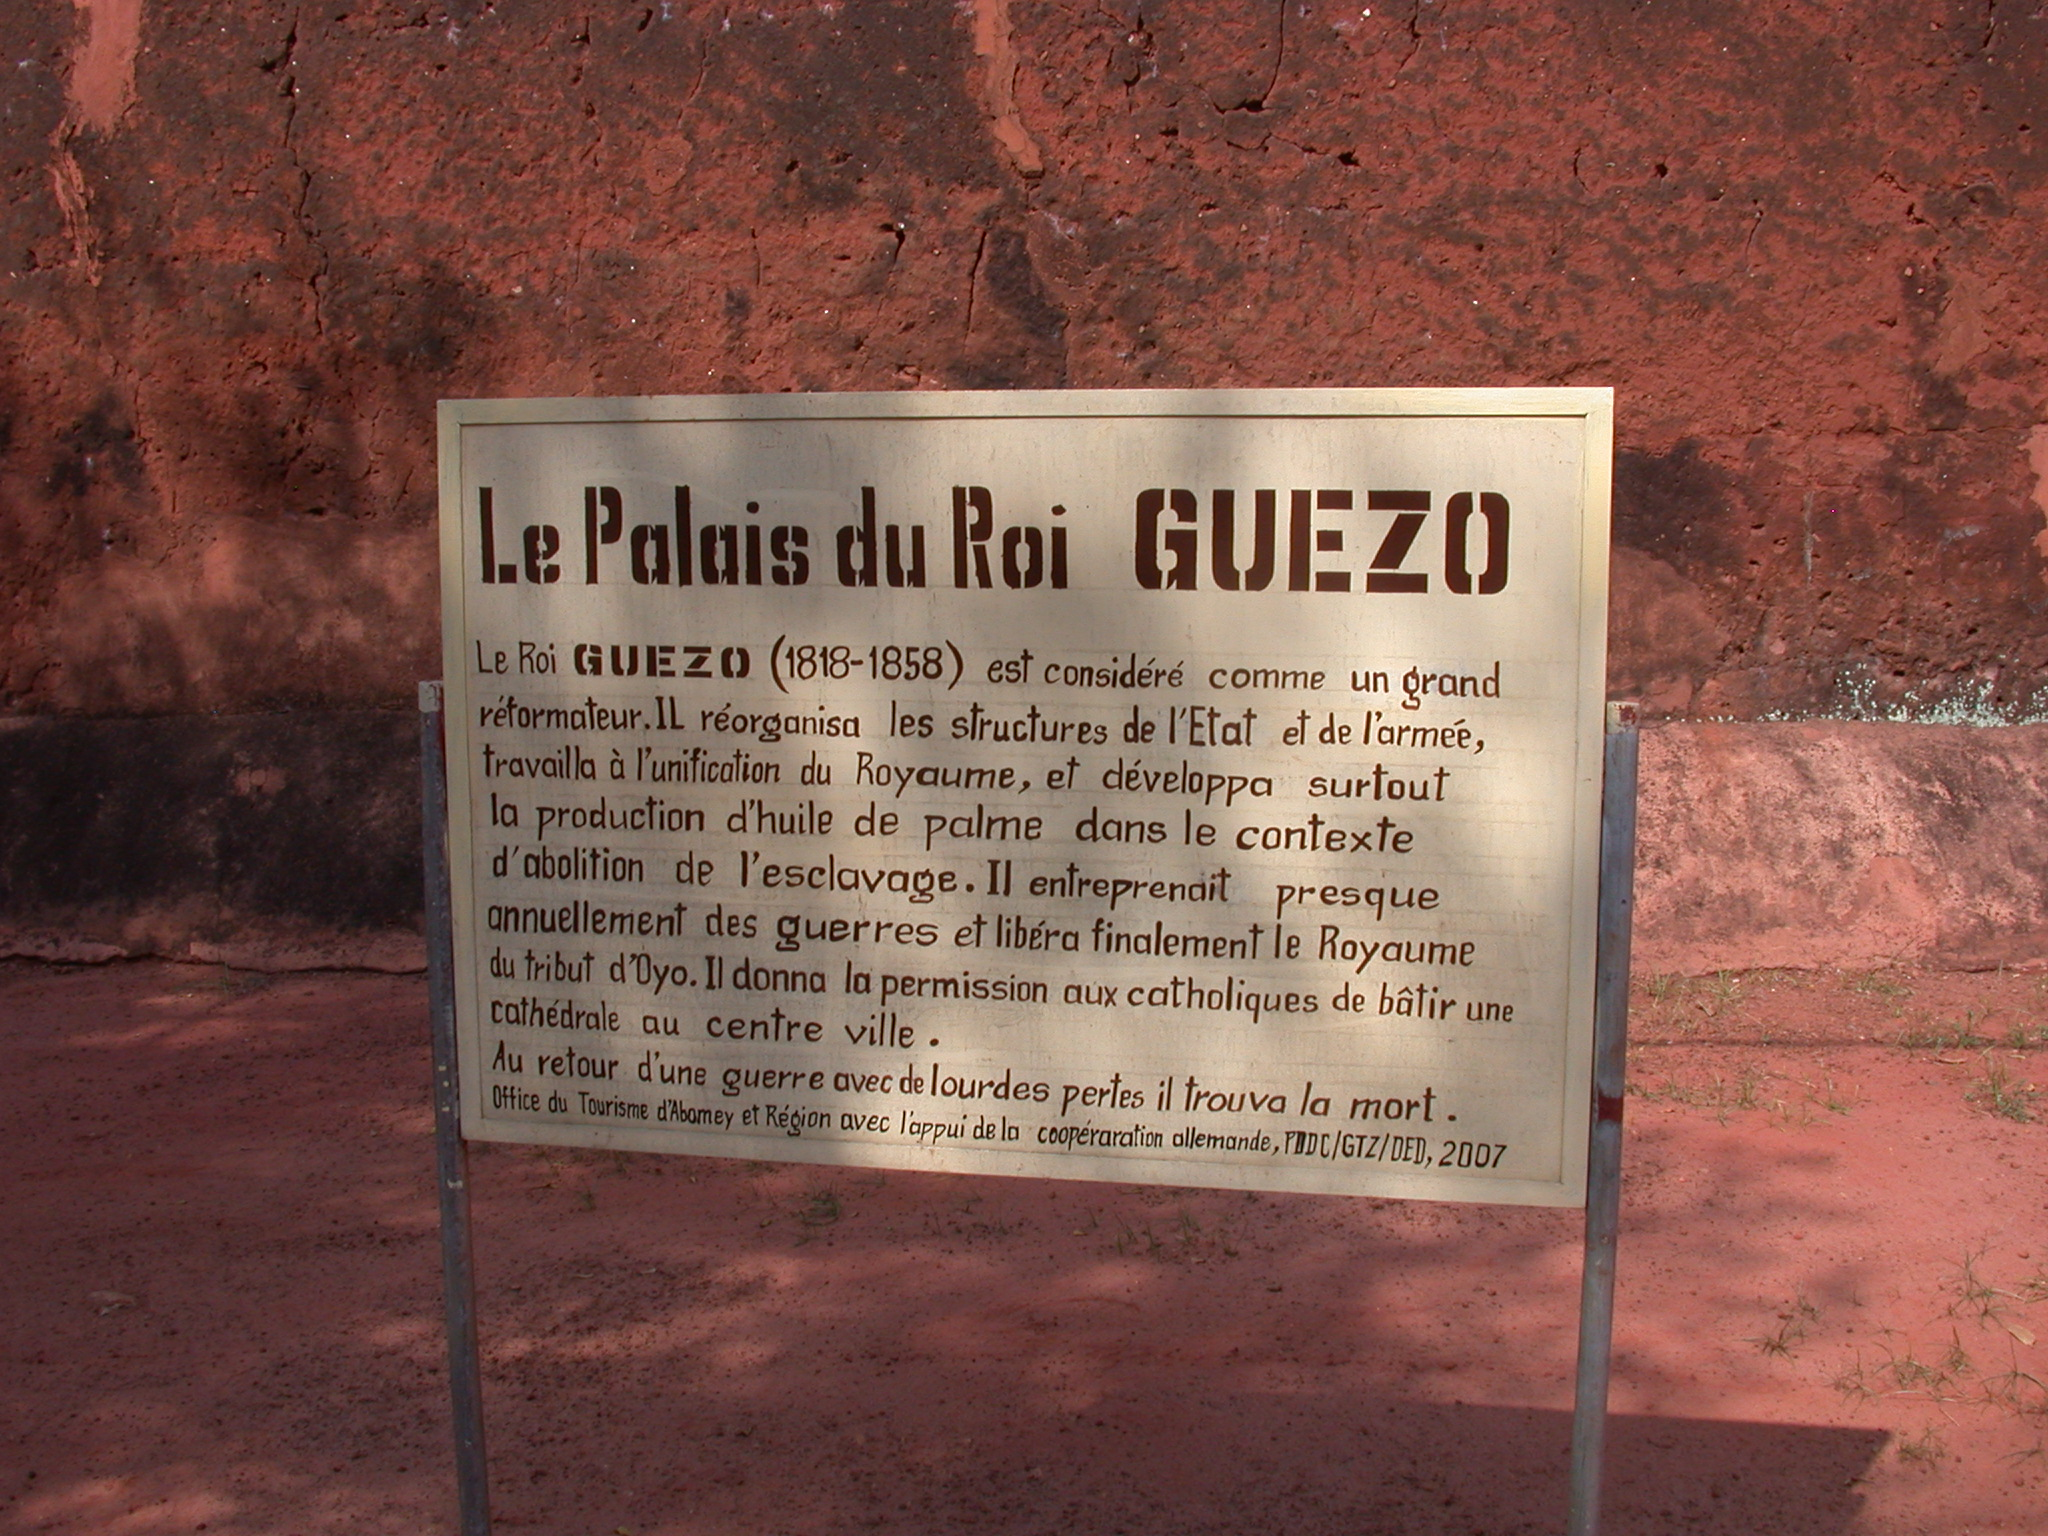 Sign for the Palace of King Guezo, Abomey, Benin